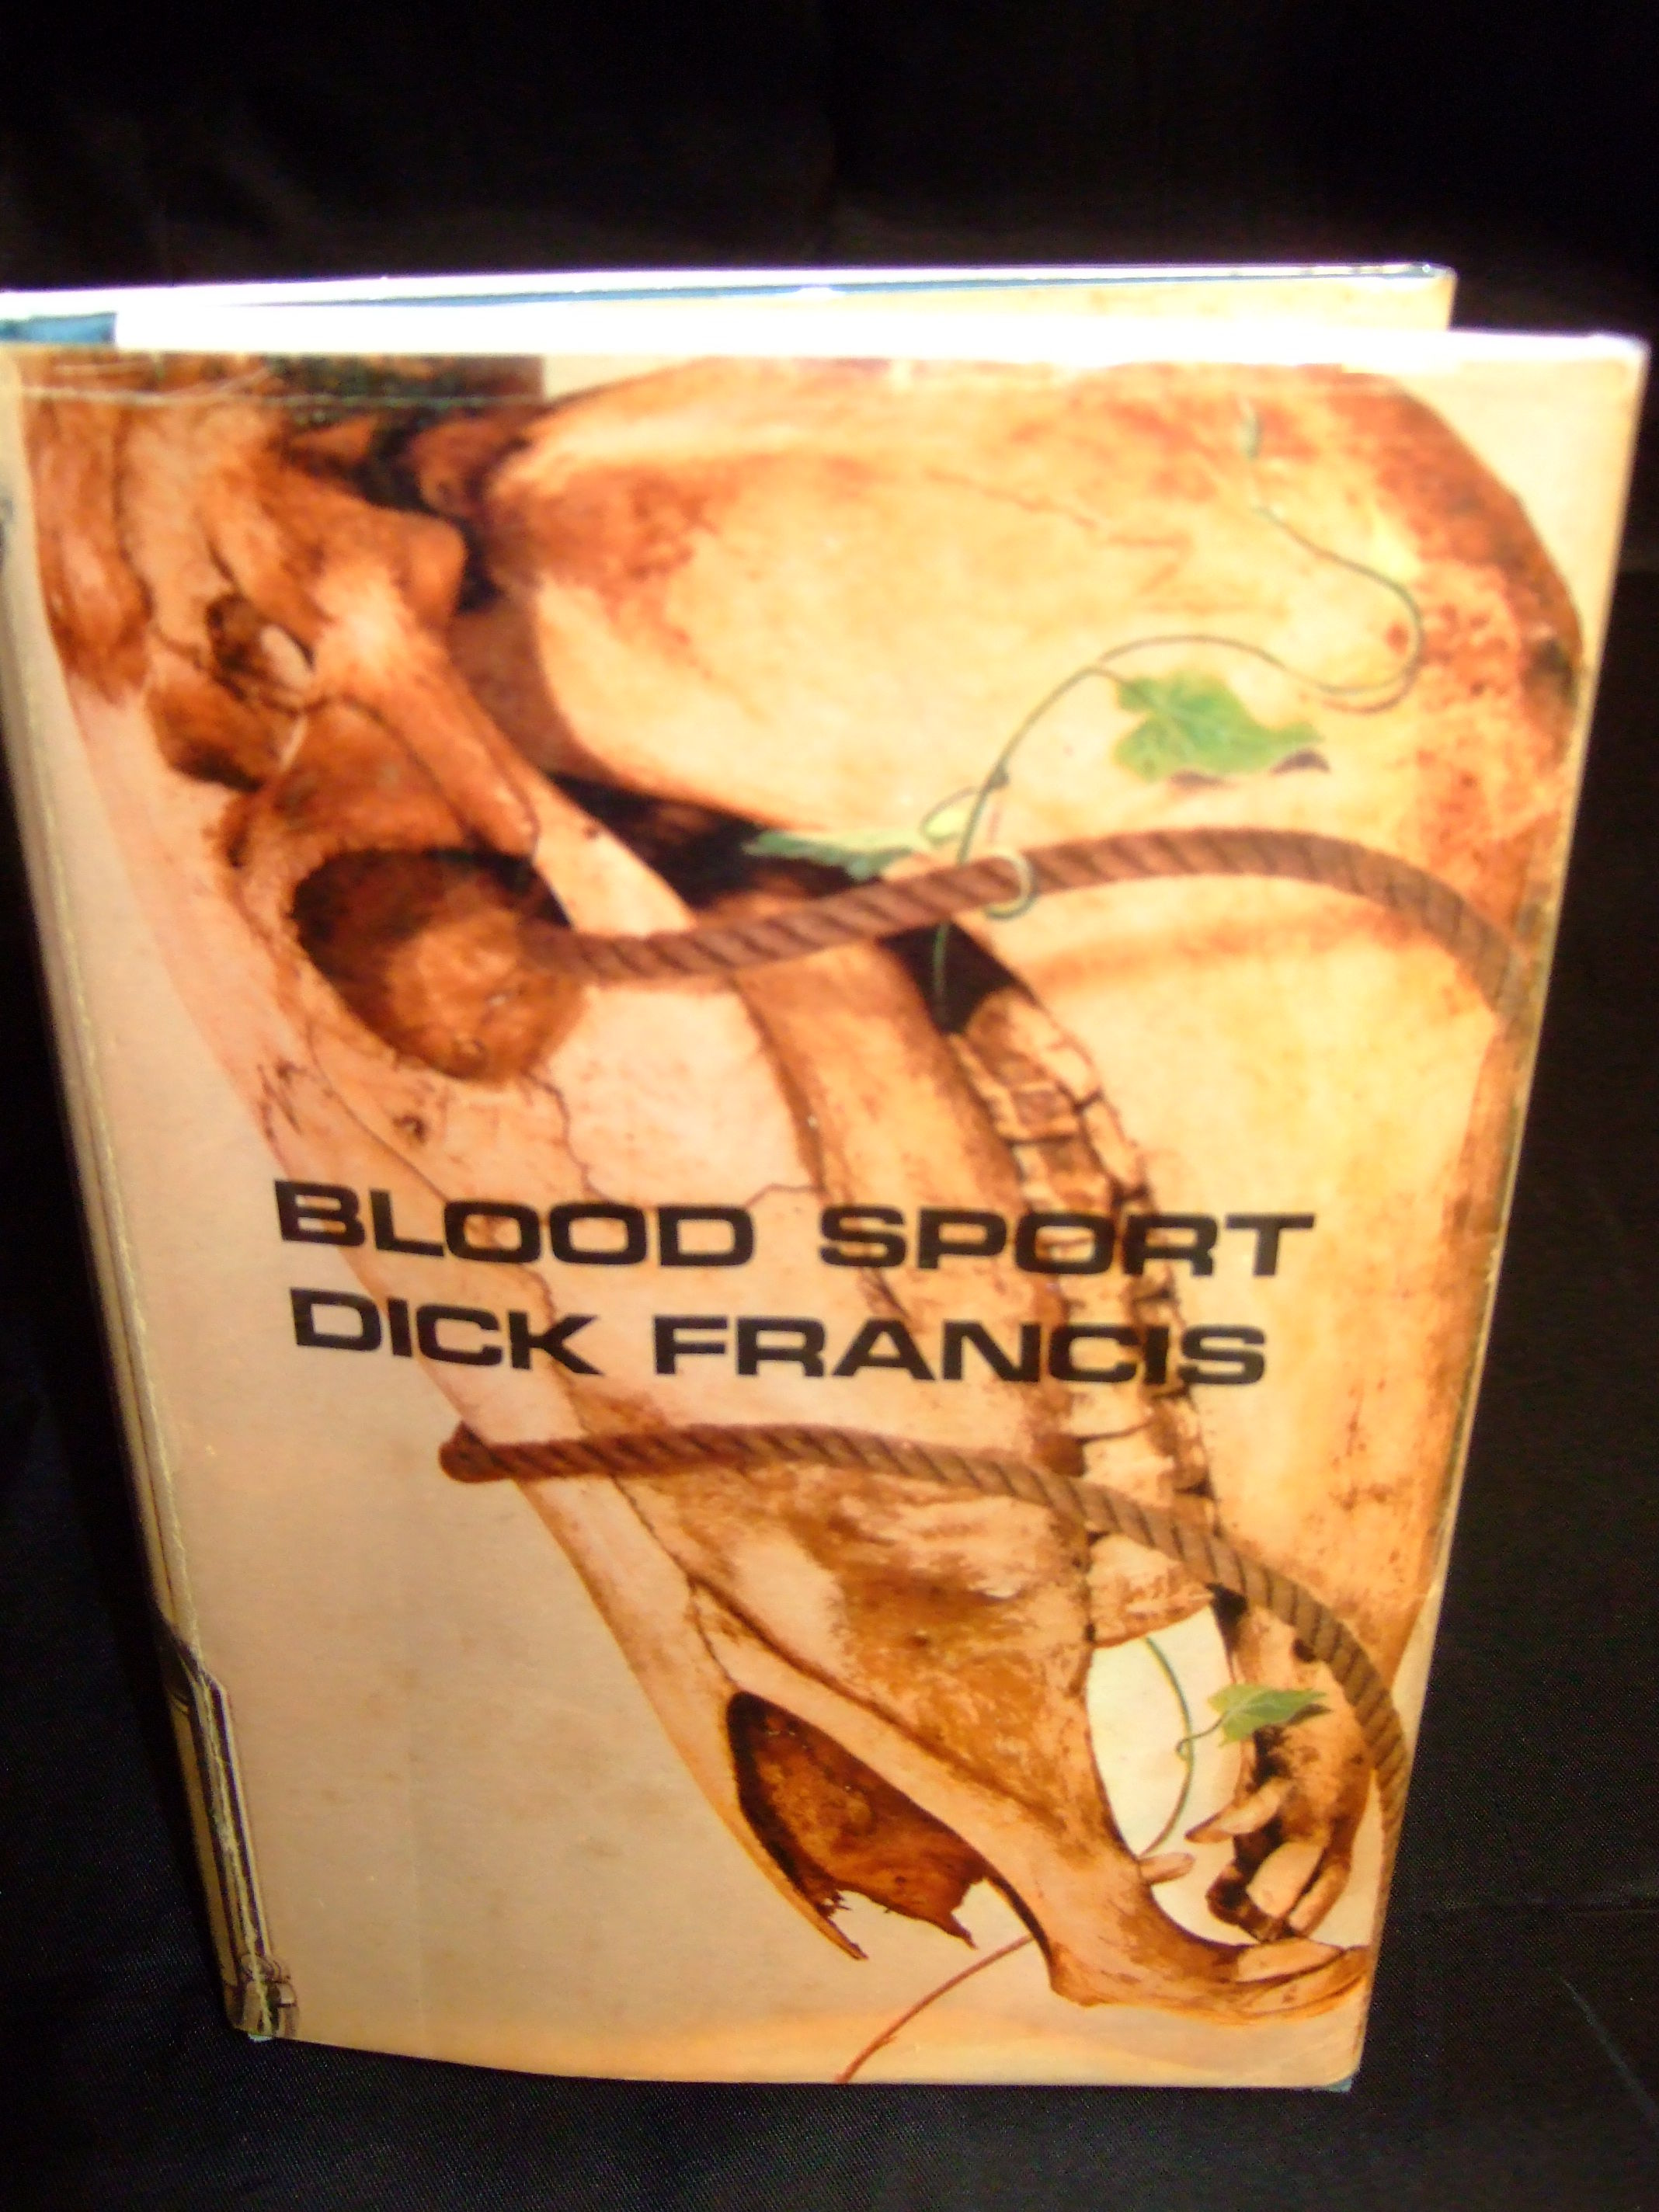 Dick francis blood sport